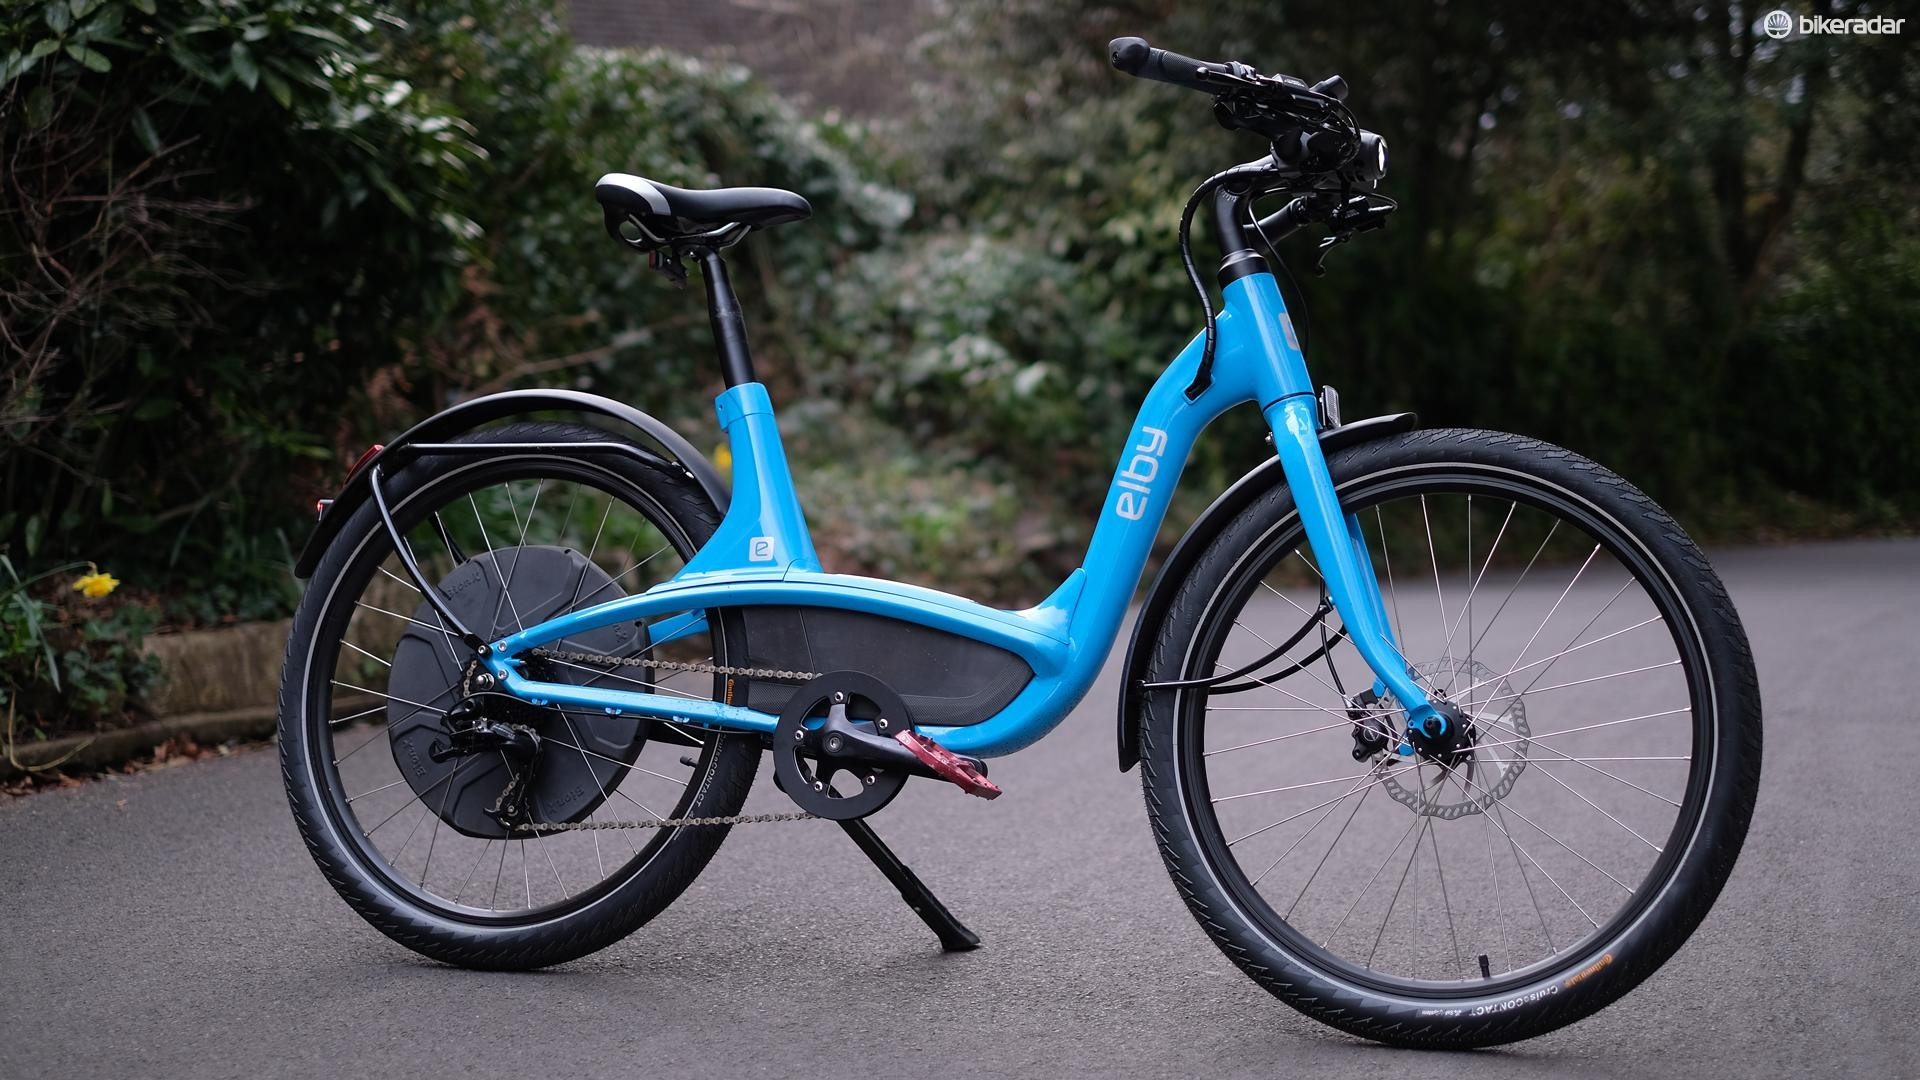 The Elby Bike is a comfortable and stately city bike with all the features you need